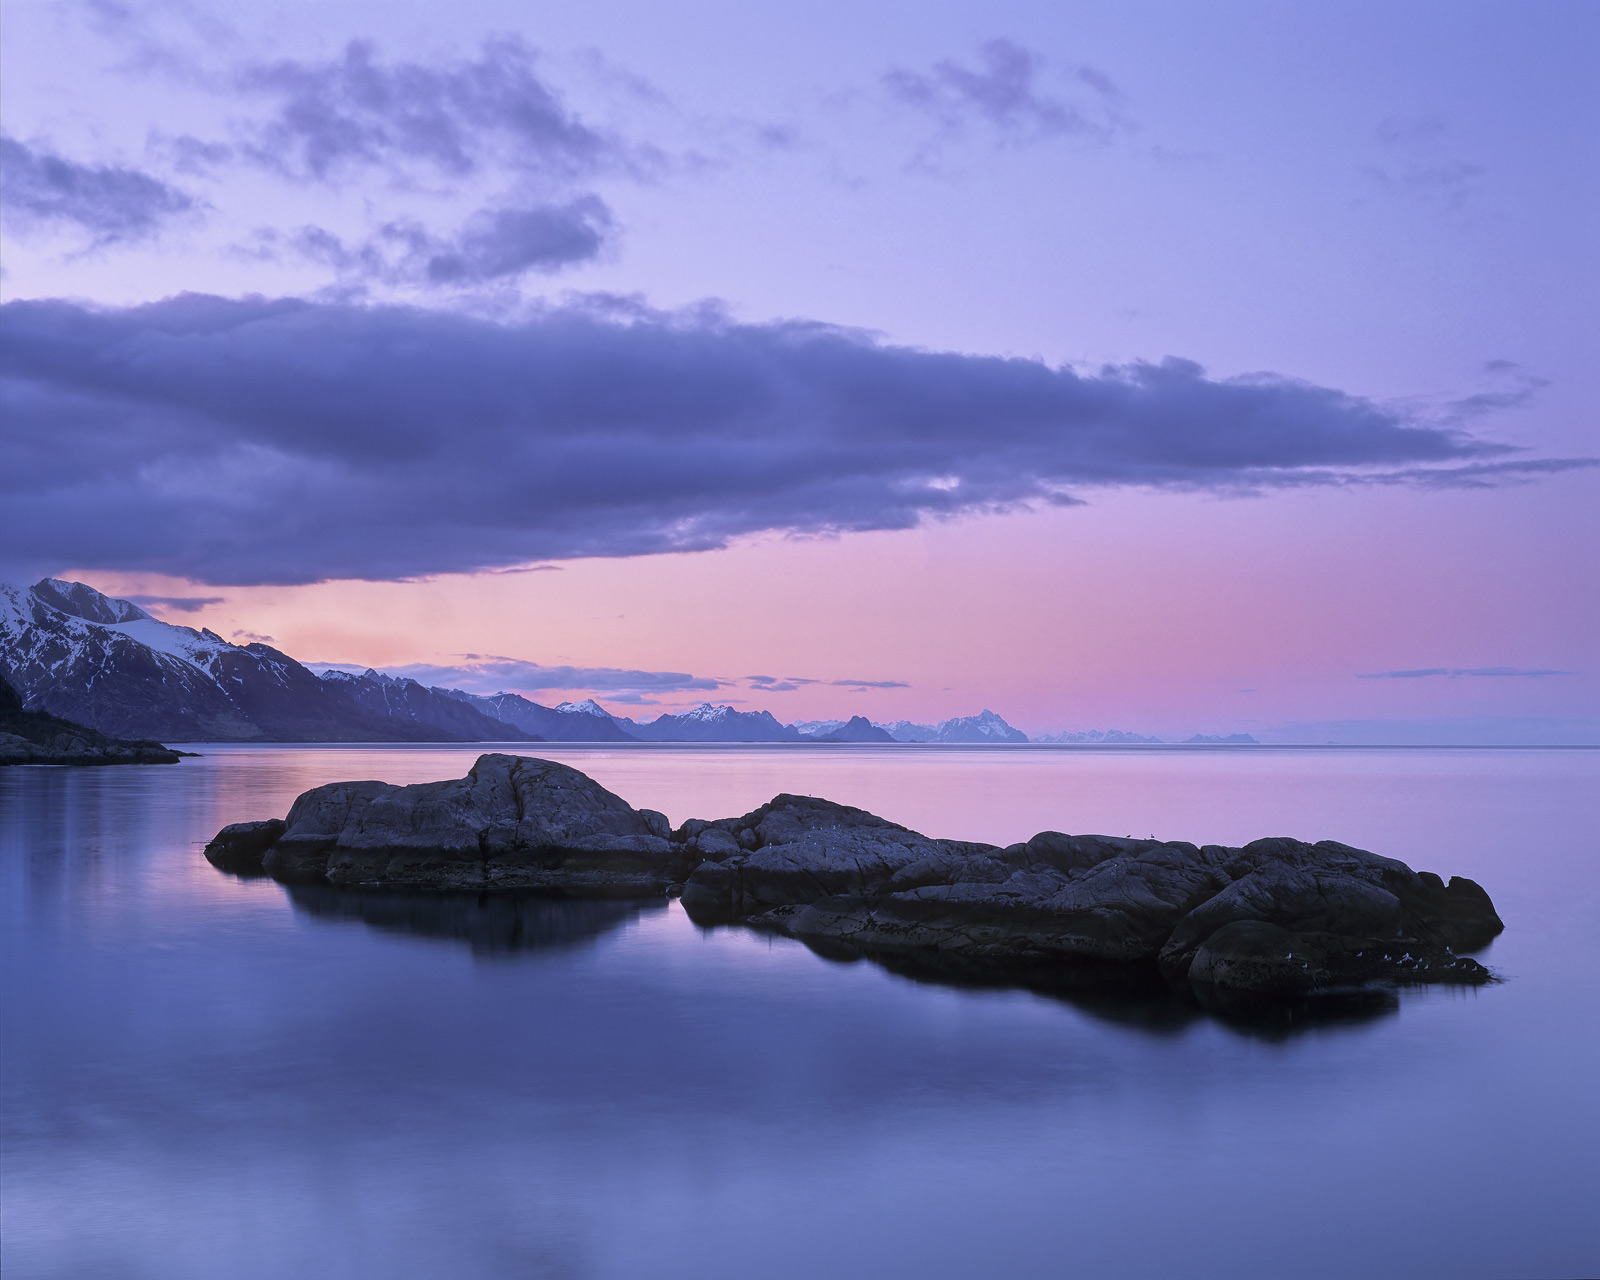 Having returned around 1am from a very successful sunset shoot over at Flakstad I was really ready to call it a night but Lofoten...